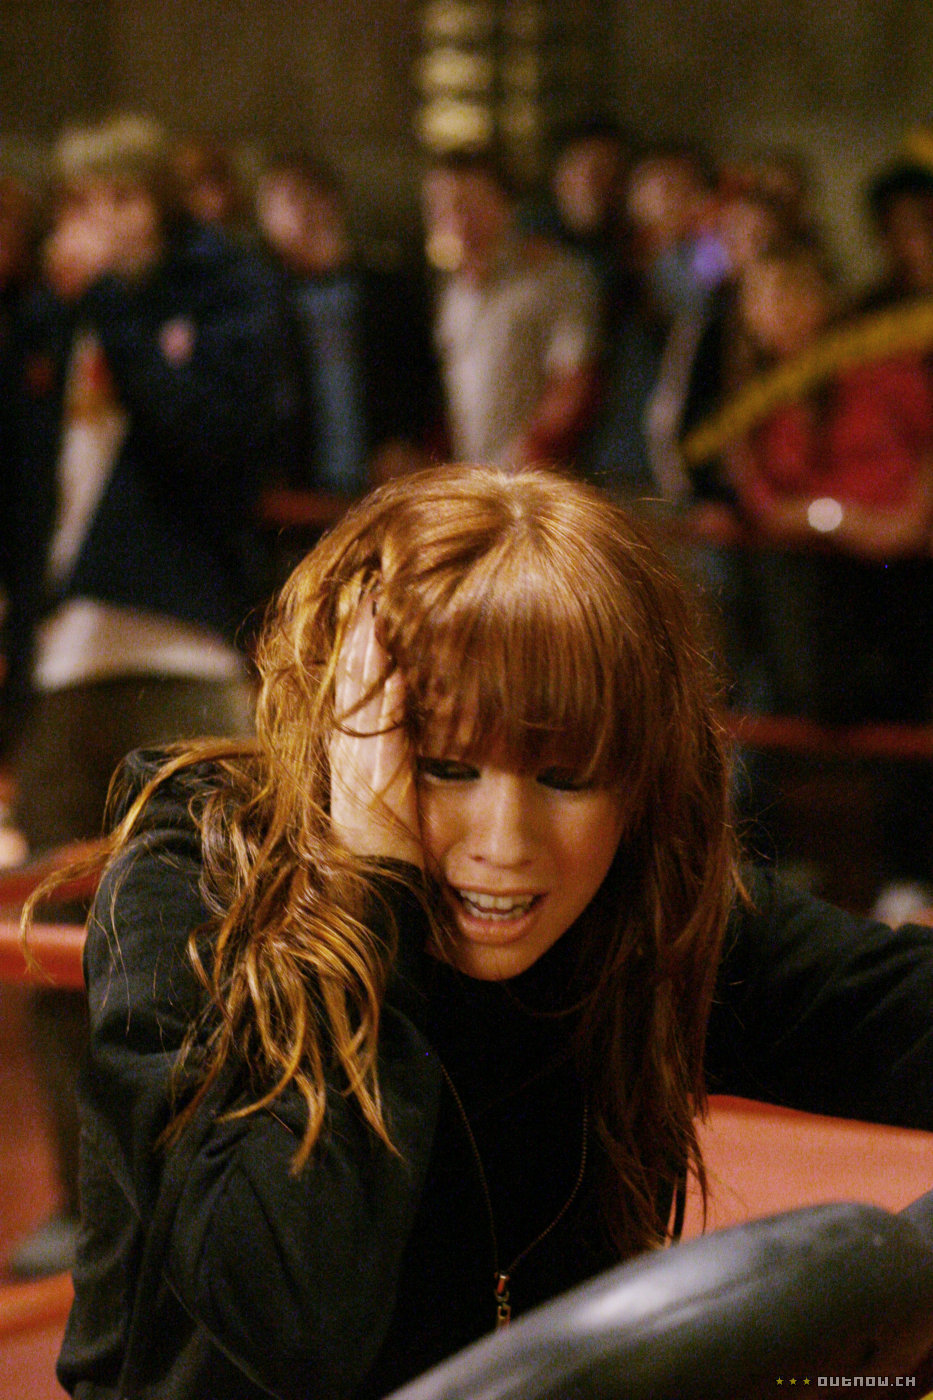 Alexz Johnson Final Destination 3